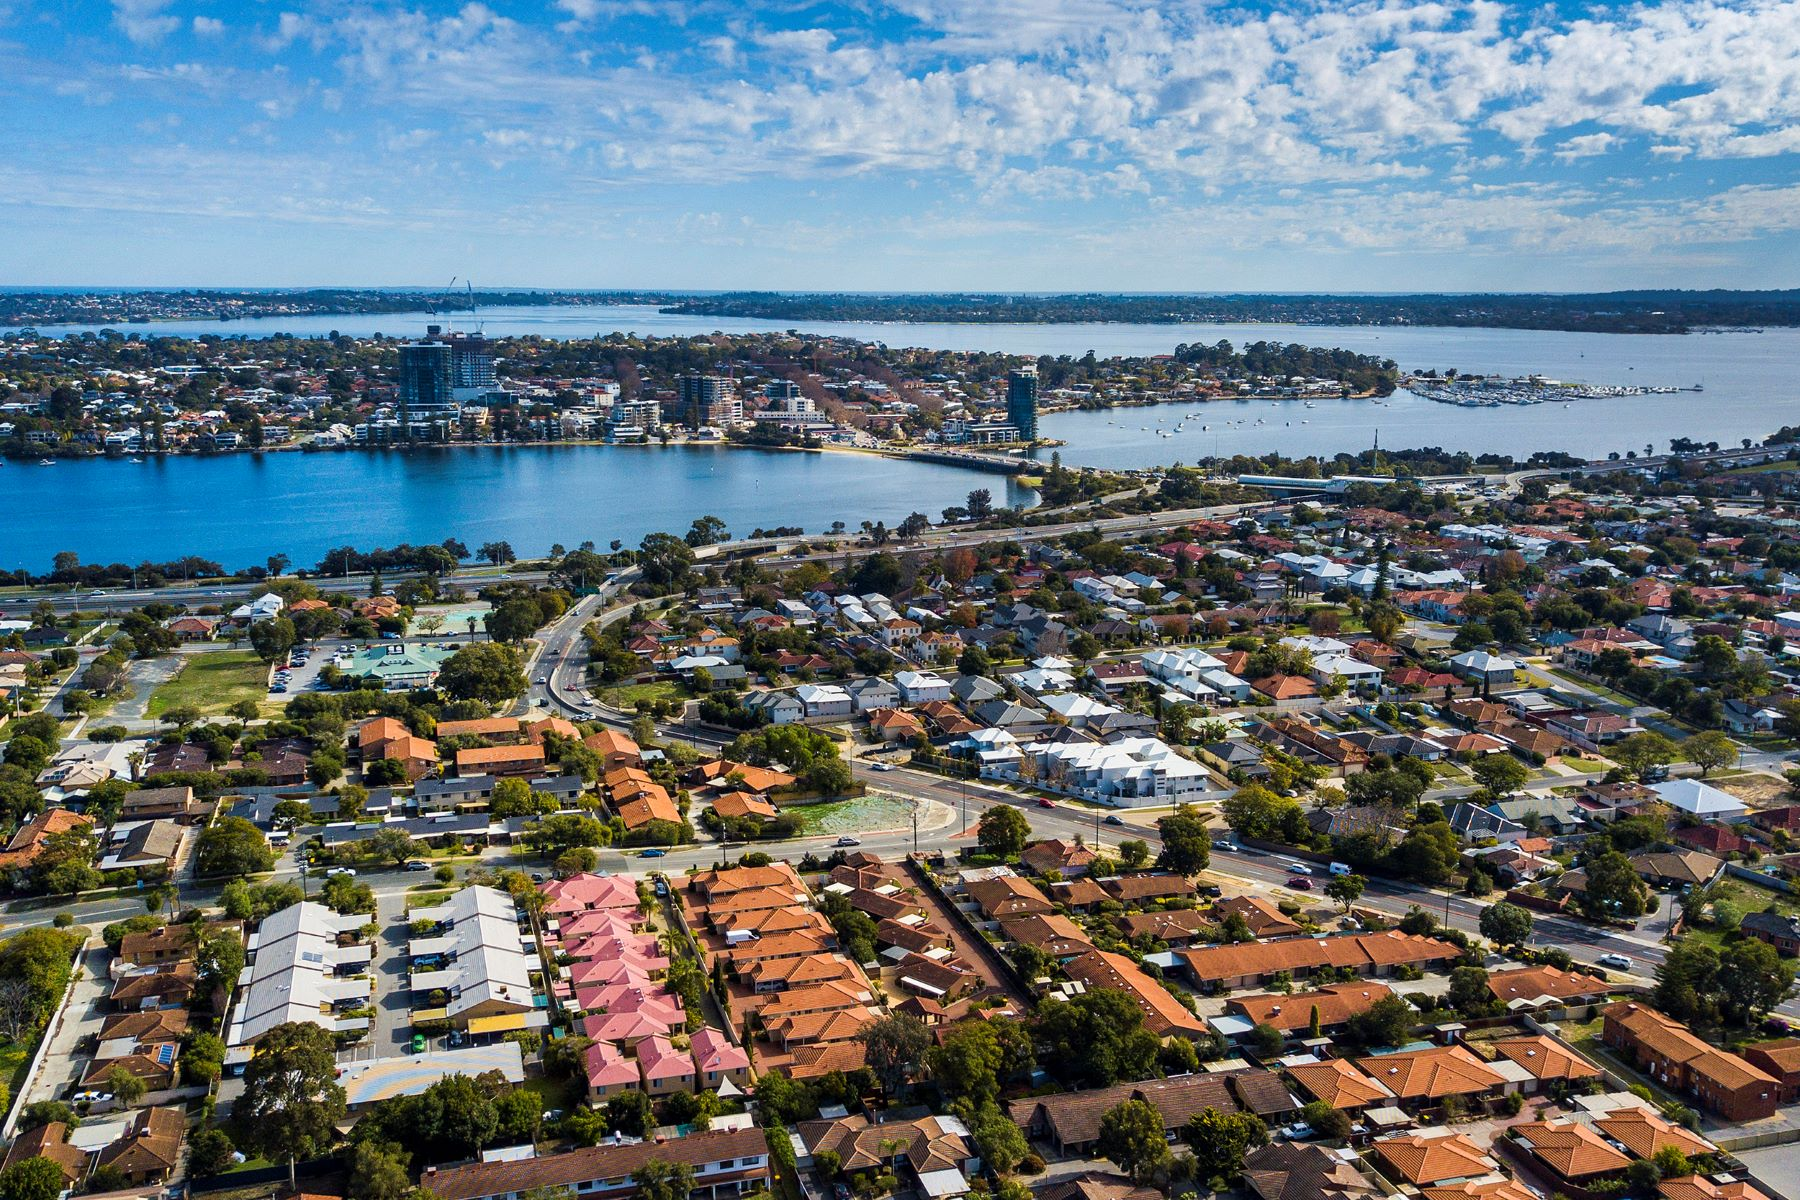 Multi-Family Homes for Sale at 74 Clydesdale Street, Como 74 Clydesdale Street Perth, Western Australia 6152 Australia